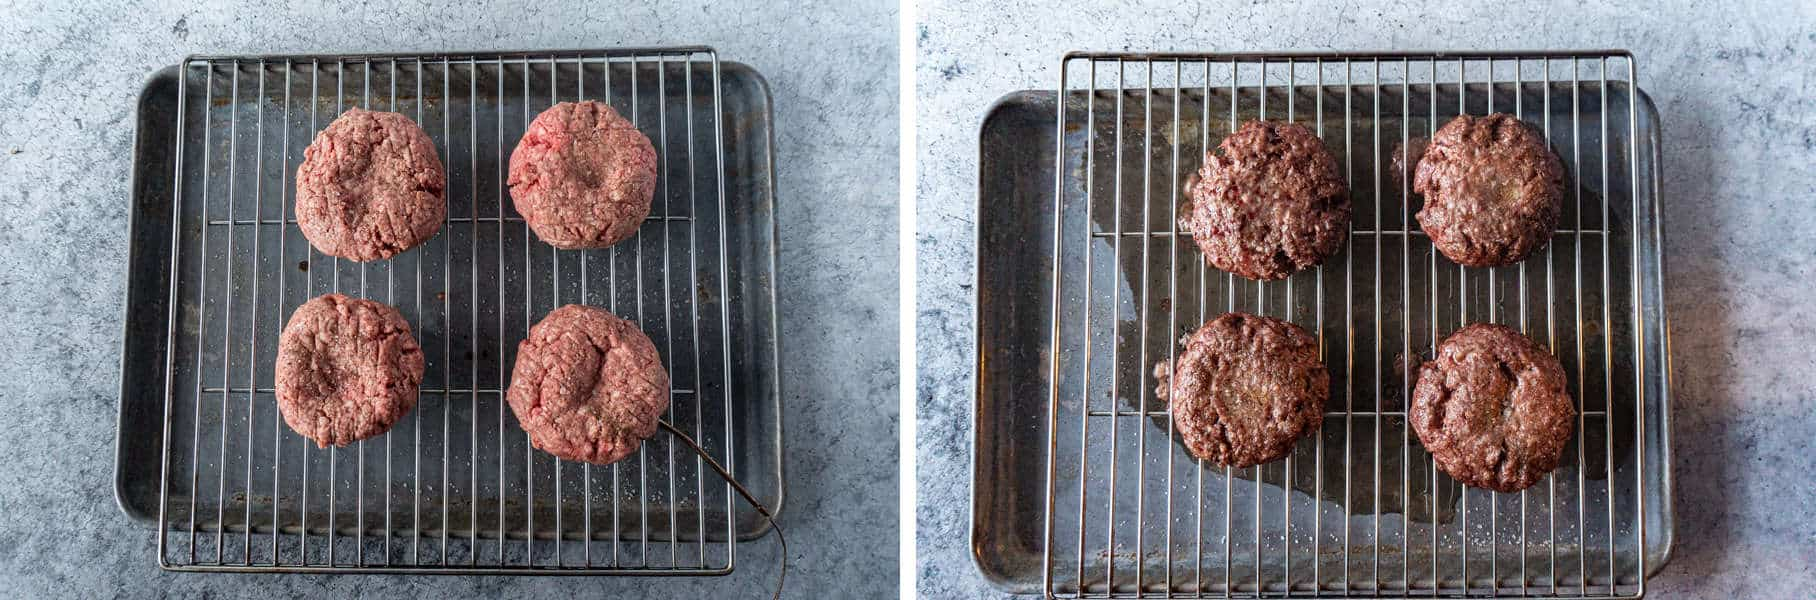 Burger Patties Before and After Baking